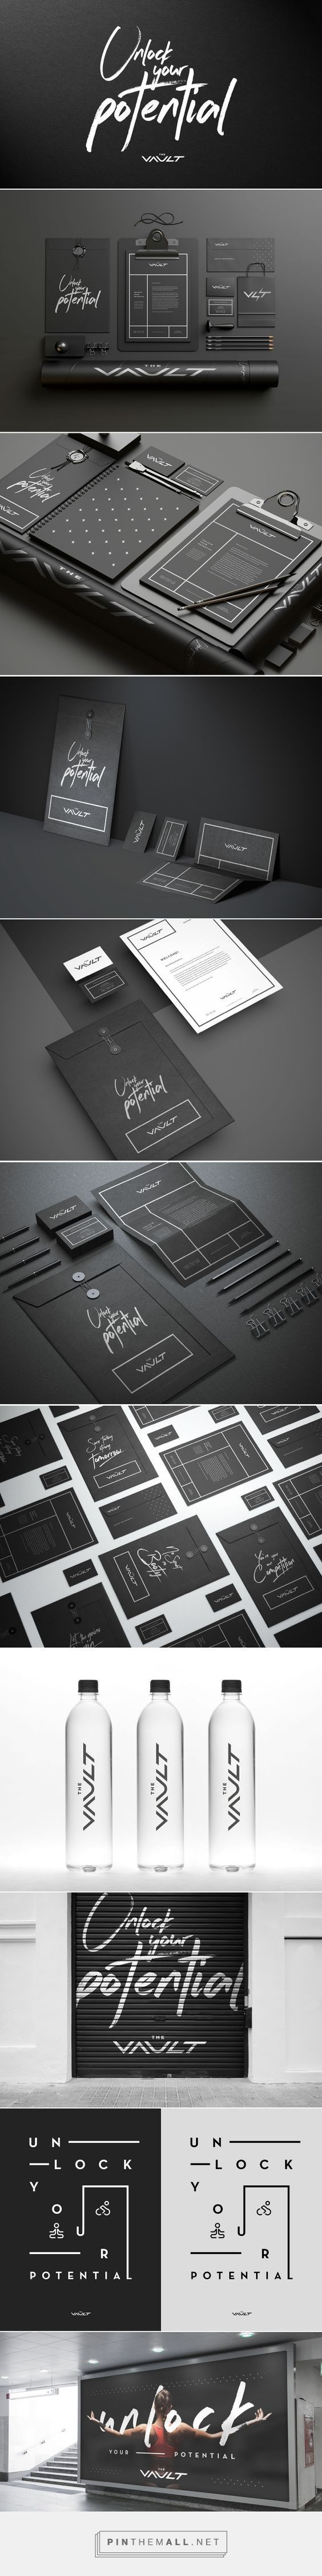 Brand design and ideas | Simple black and white branding inspiration |  The Vault Branding on Behance